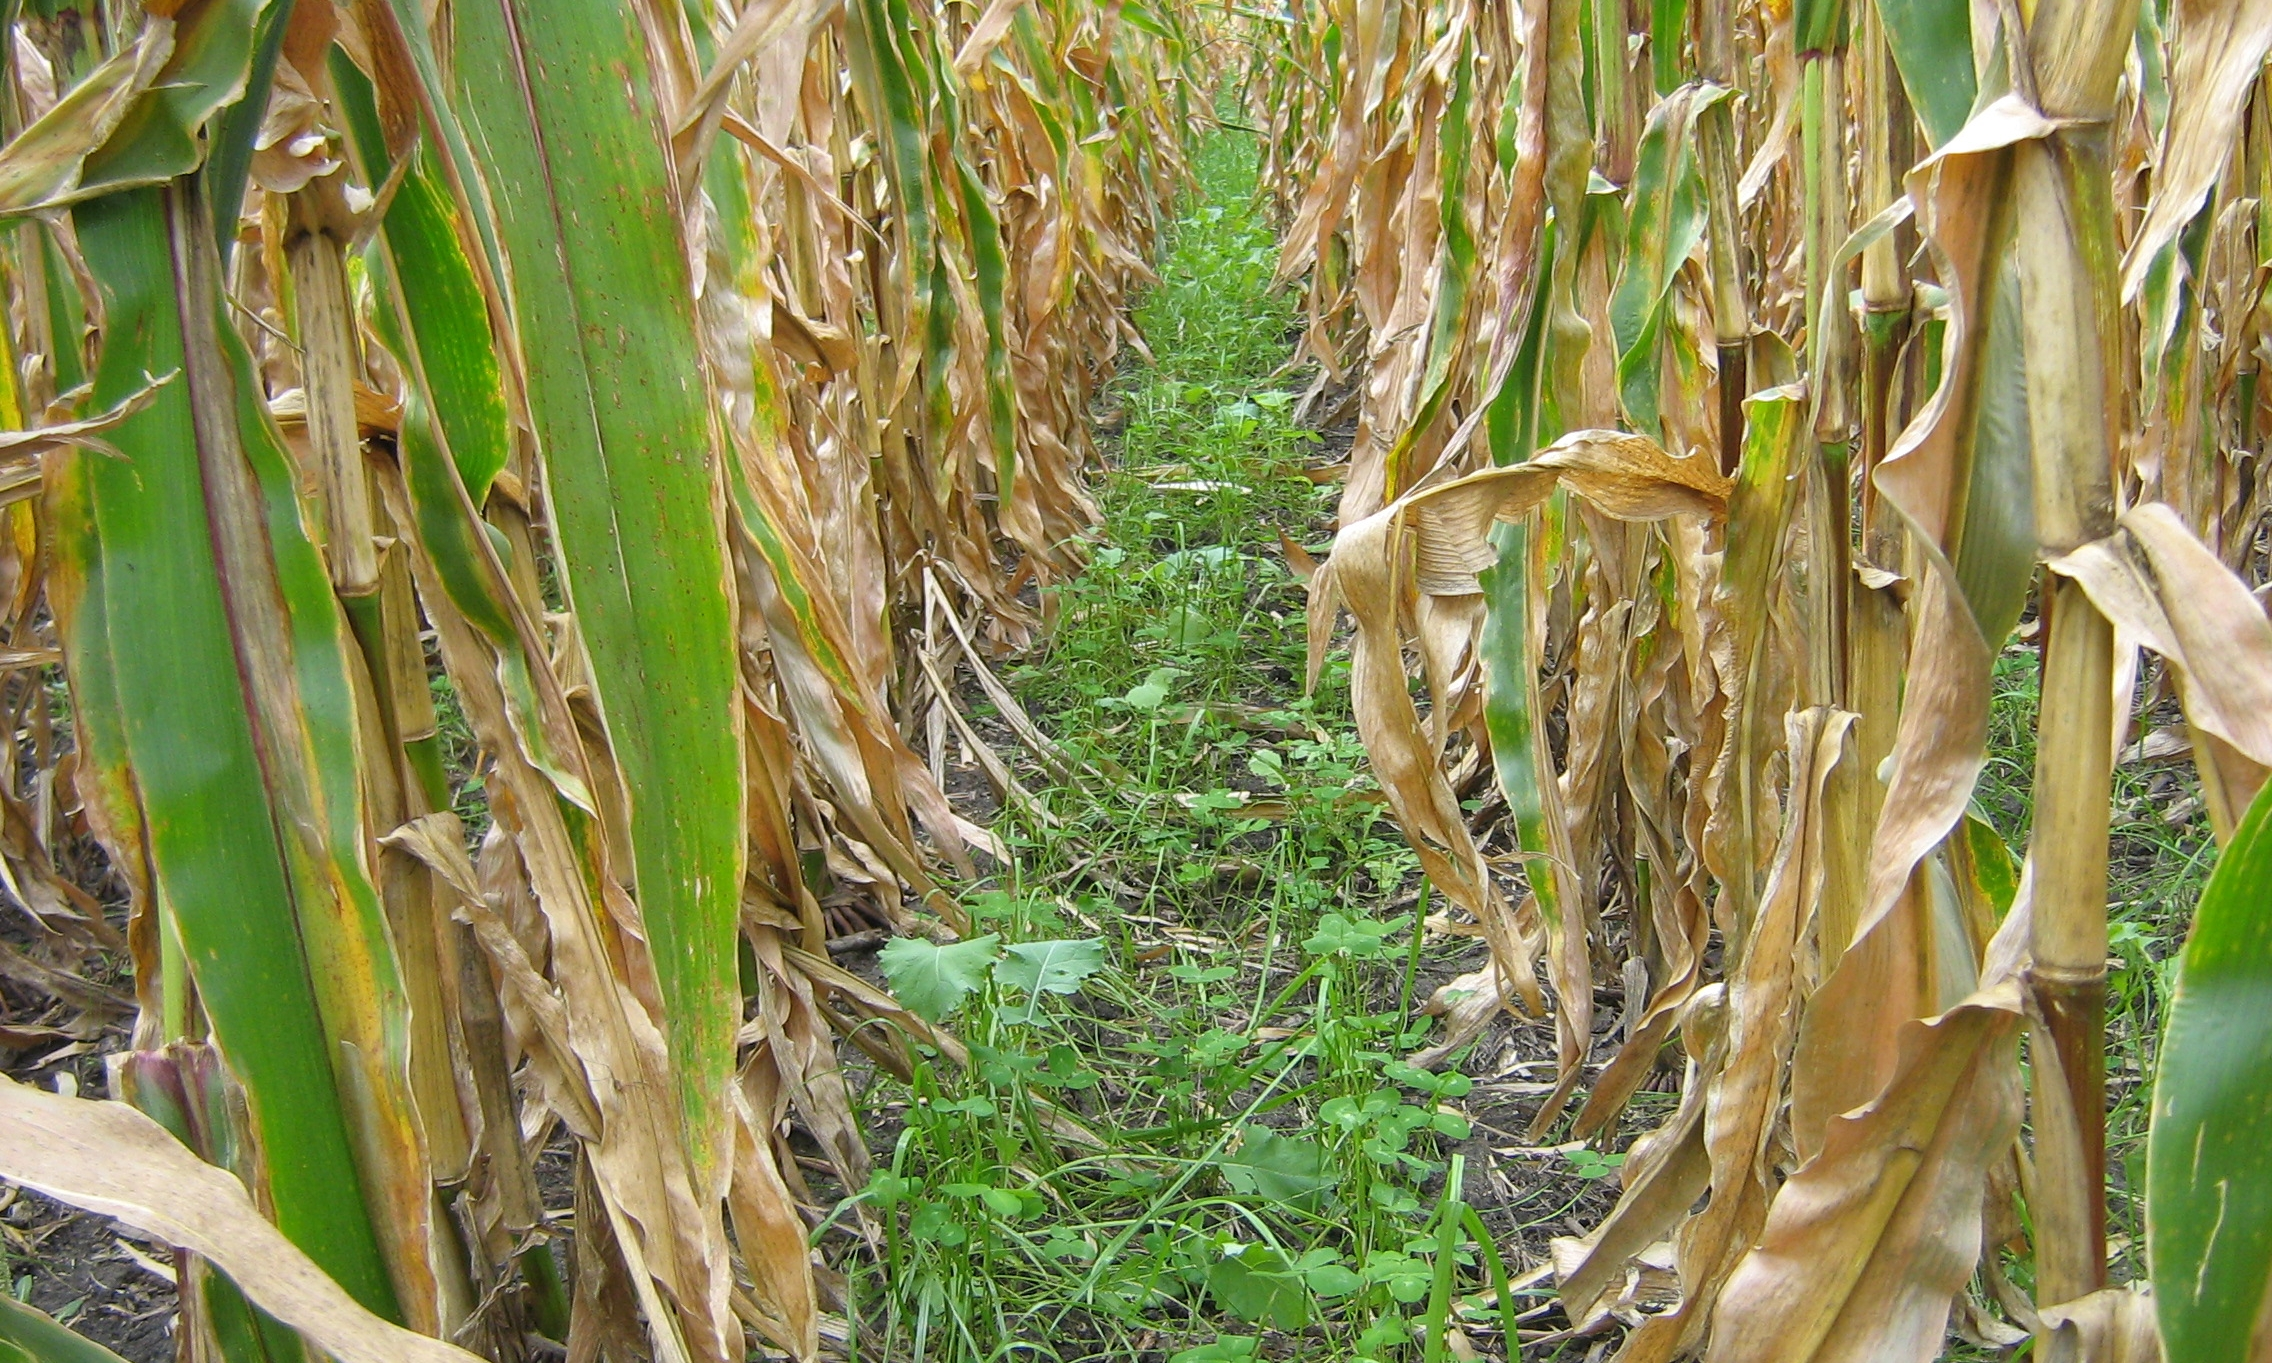 The cover crop growing between these corn rows is helping cut down on soil erosion and adding natural organic matter to the soil.